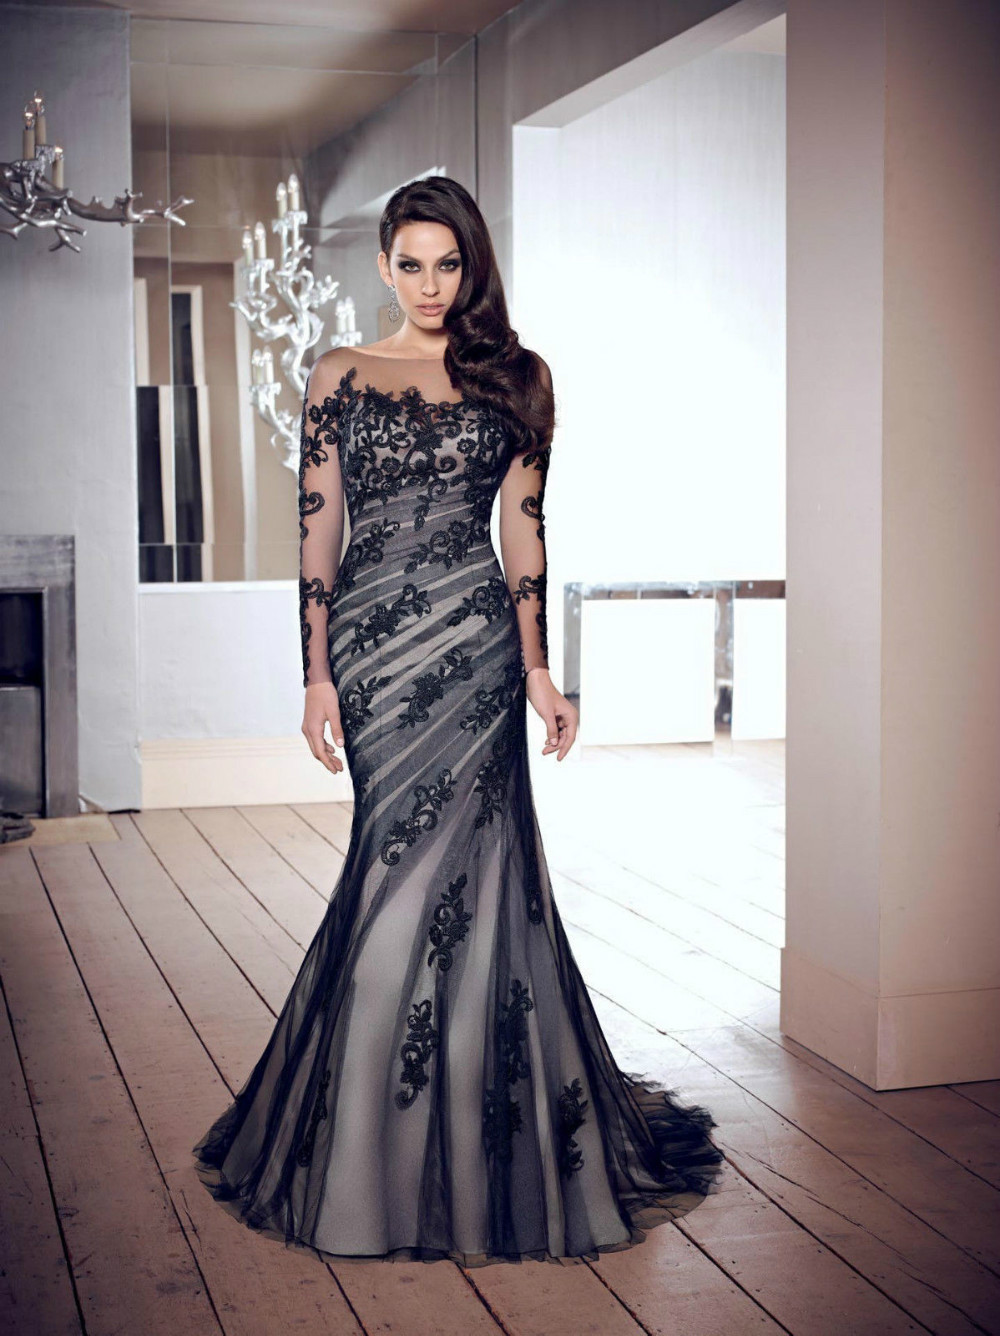 Black Evening Dresses Size 6 - Women\'s Gowns And Formal Dresses